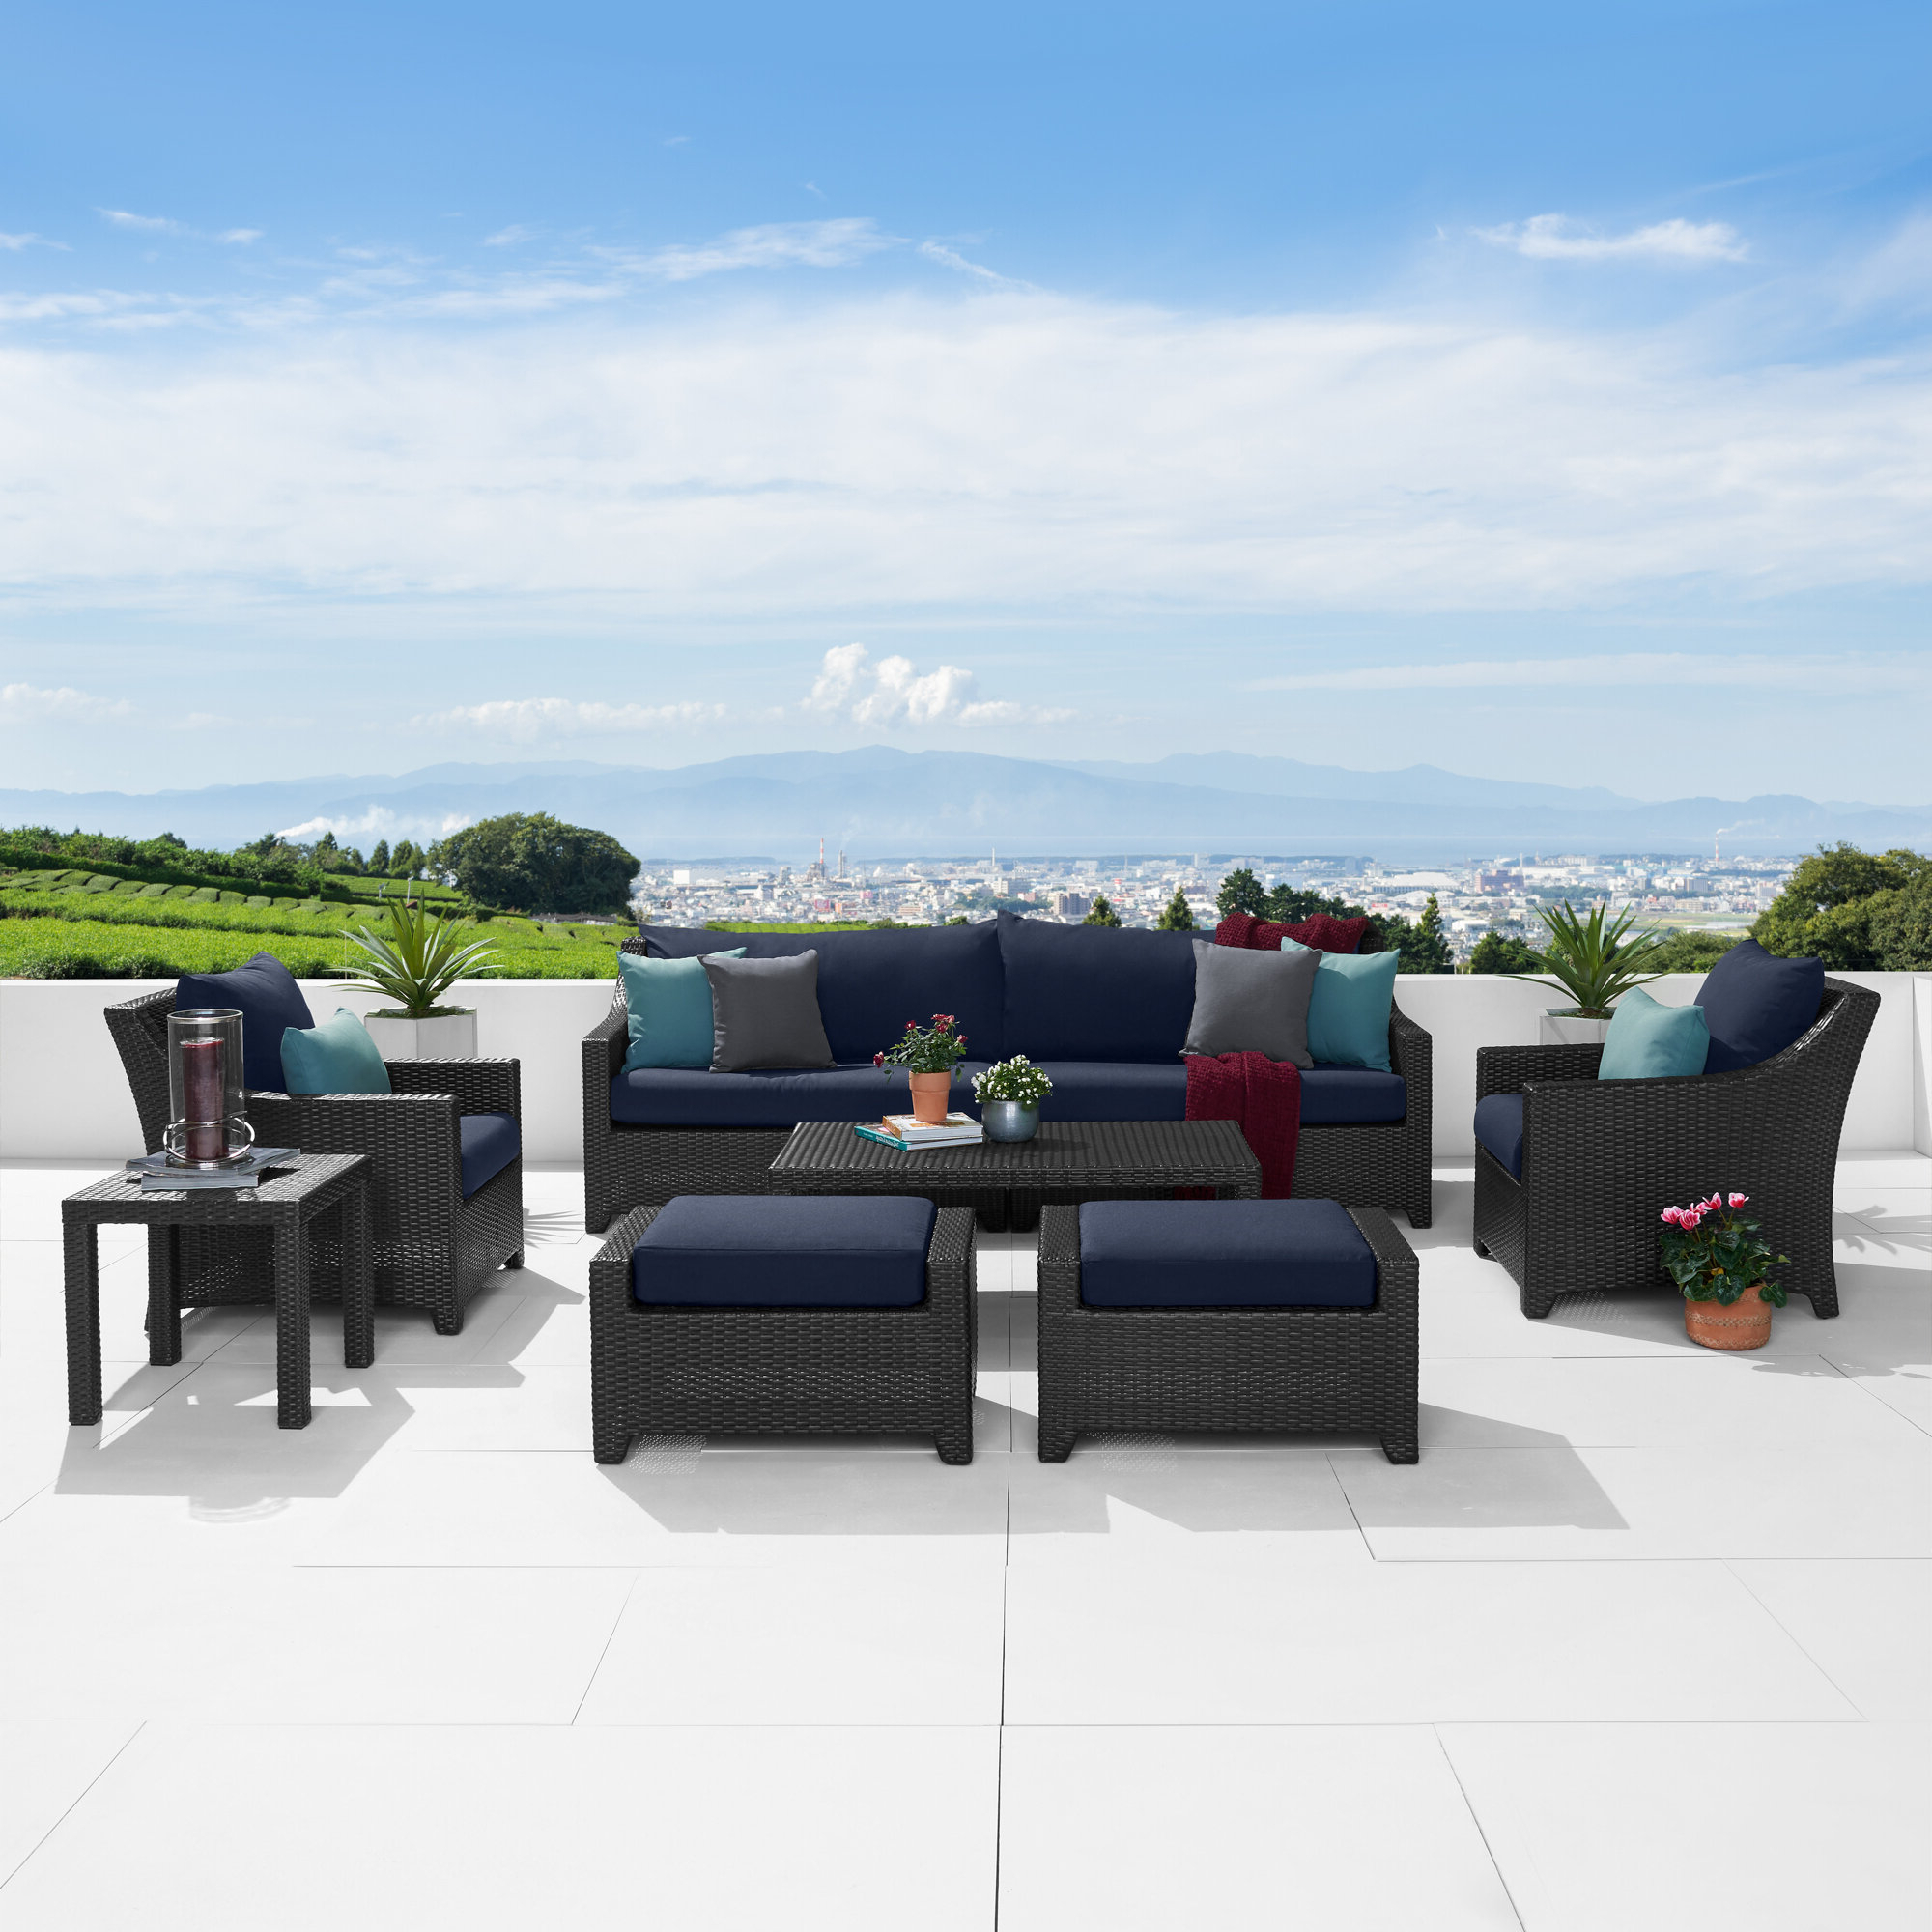 Fashionable Northridge 8 Piece Sofa Seating Group With Sunbrella Cushions With Regard To Northridge Patio Sofas With Sunbrella Cushions (View 4 of 20)